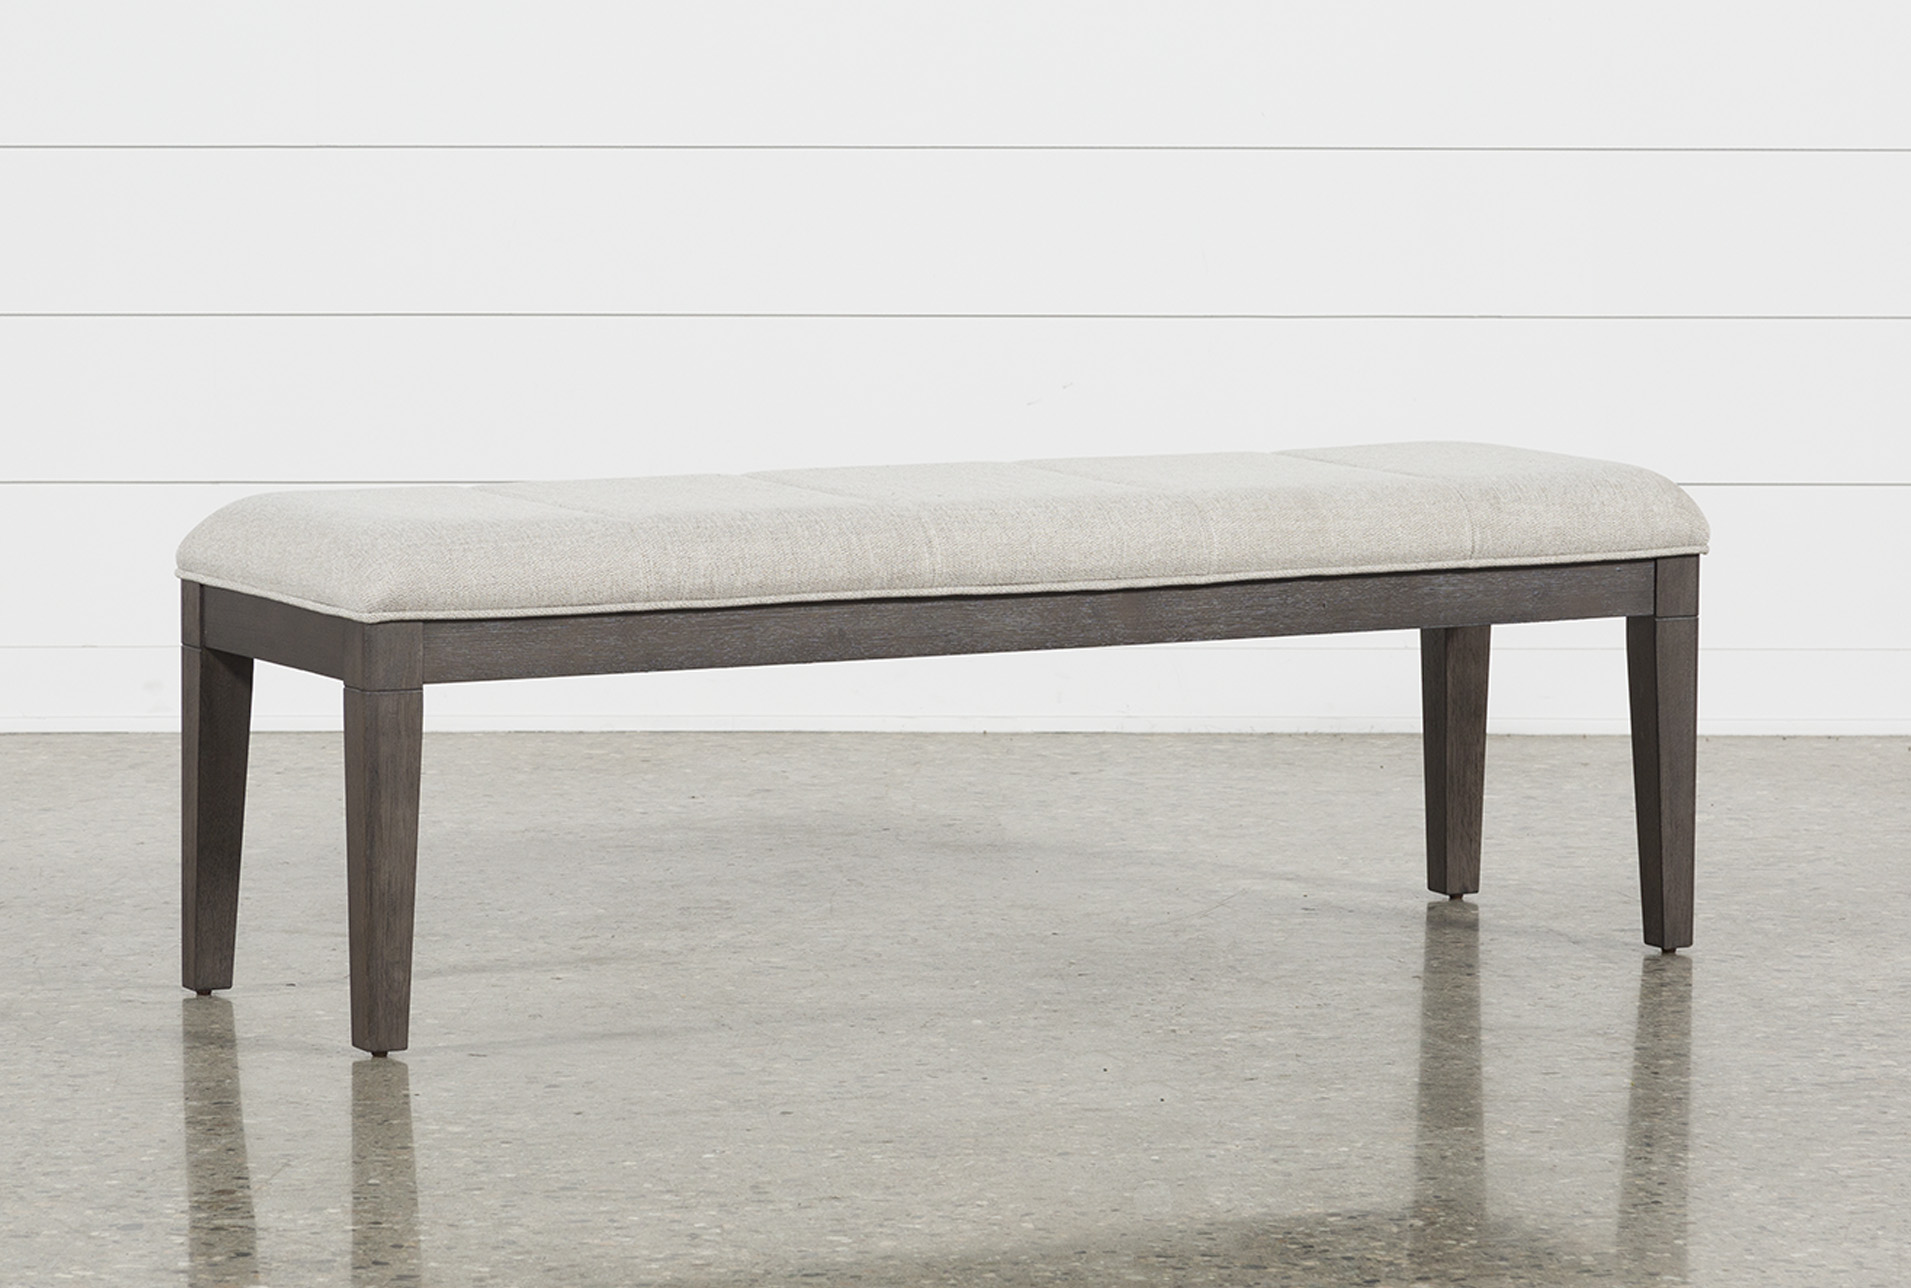 Charmant Helms Dining Bench (Qty: 1) Has Been Successfully Added To Your Cart.